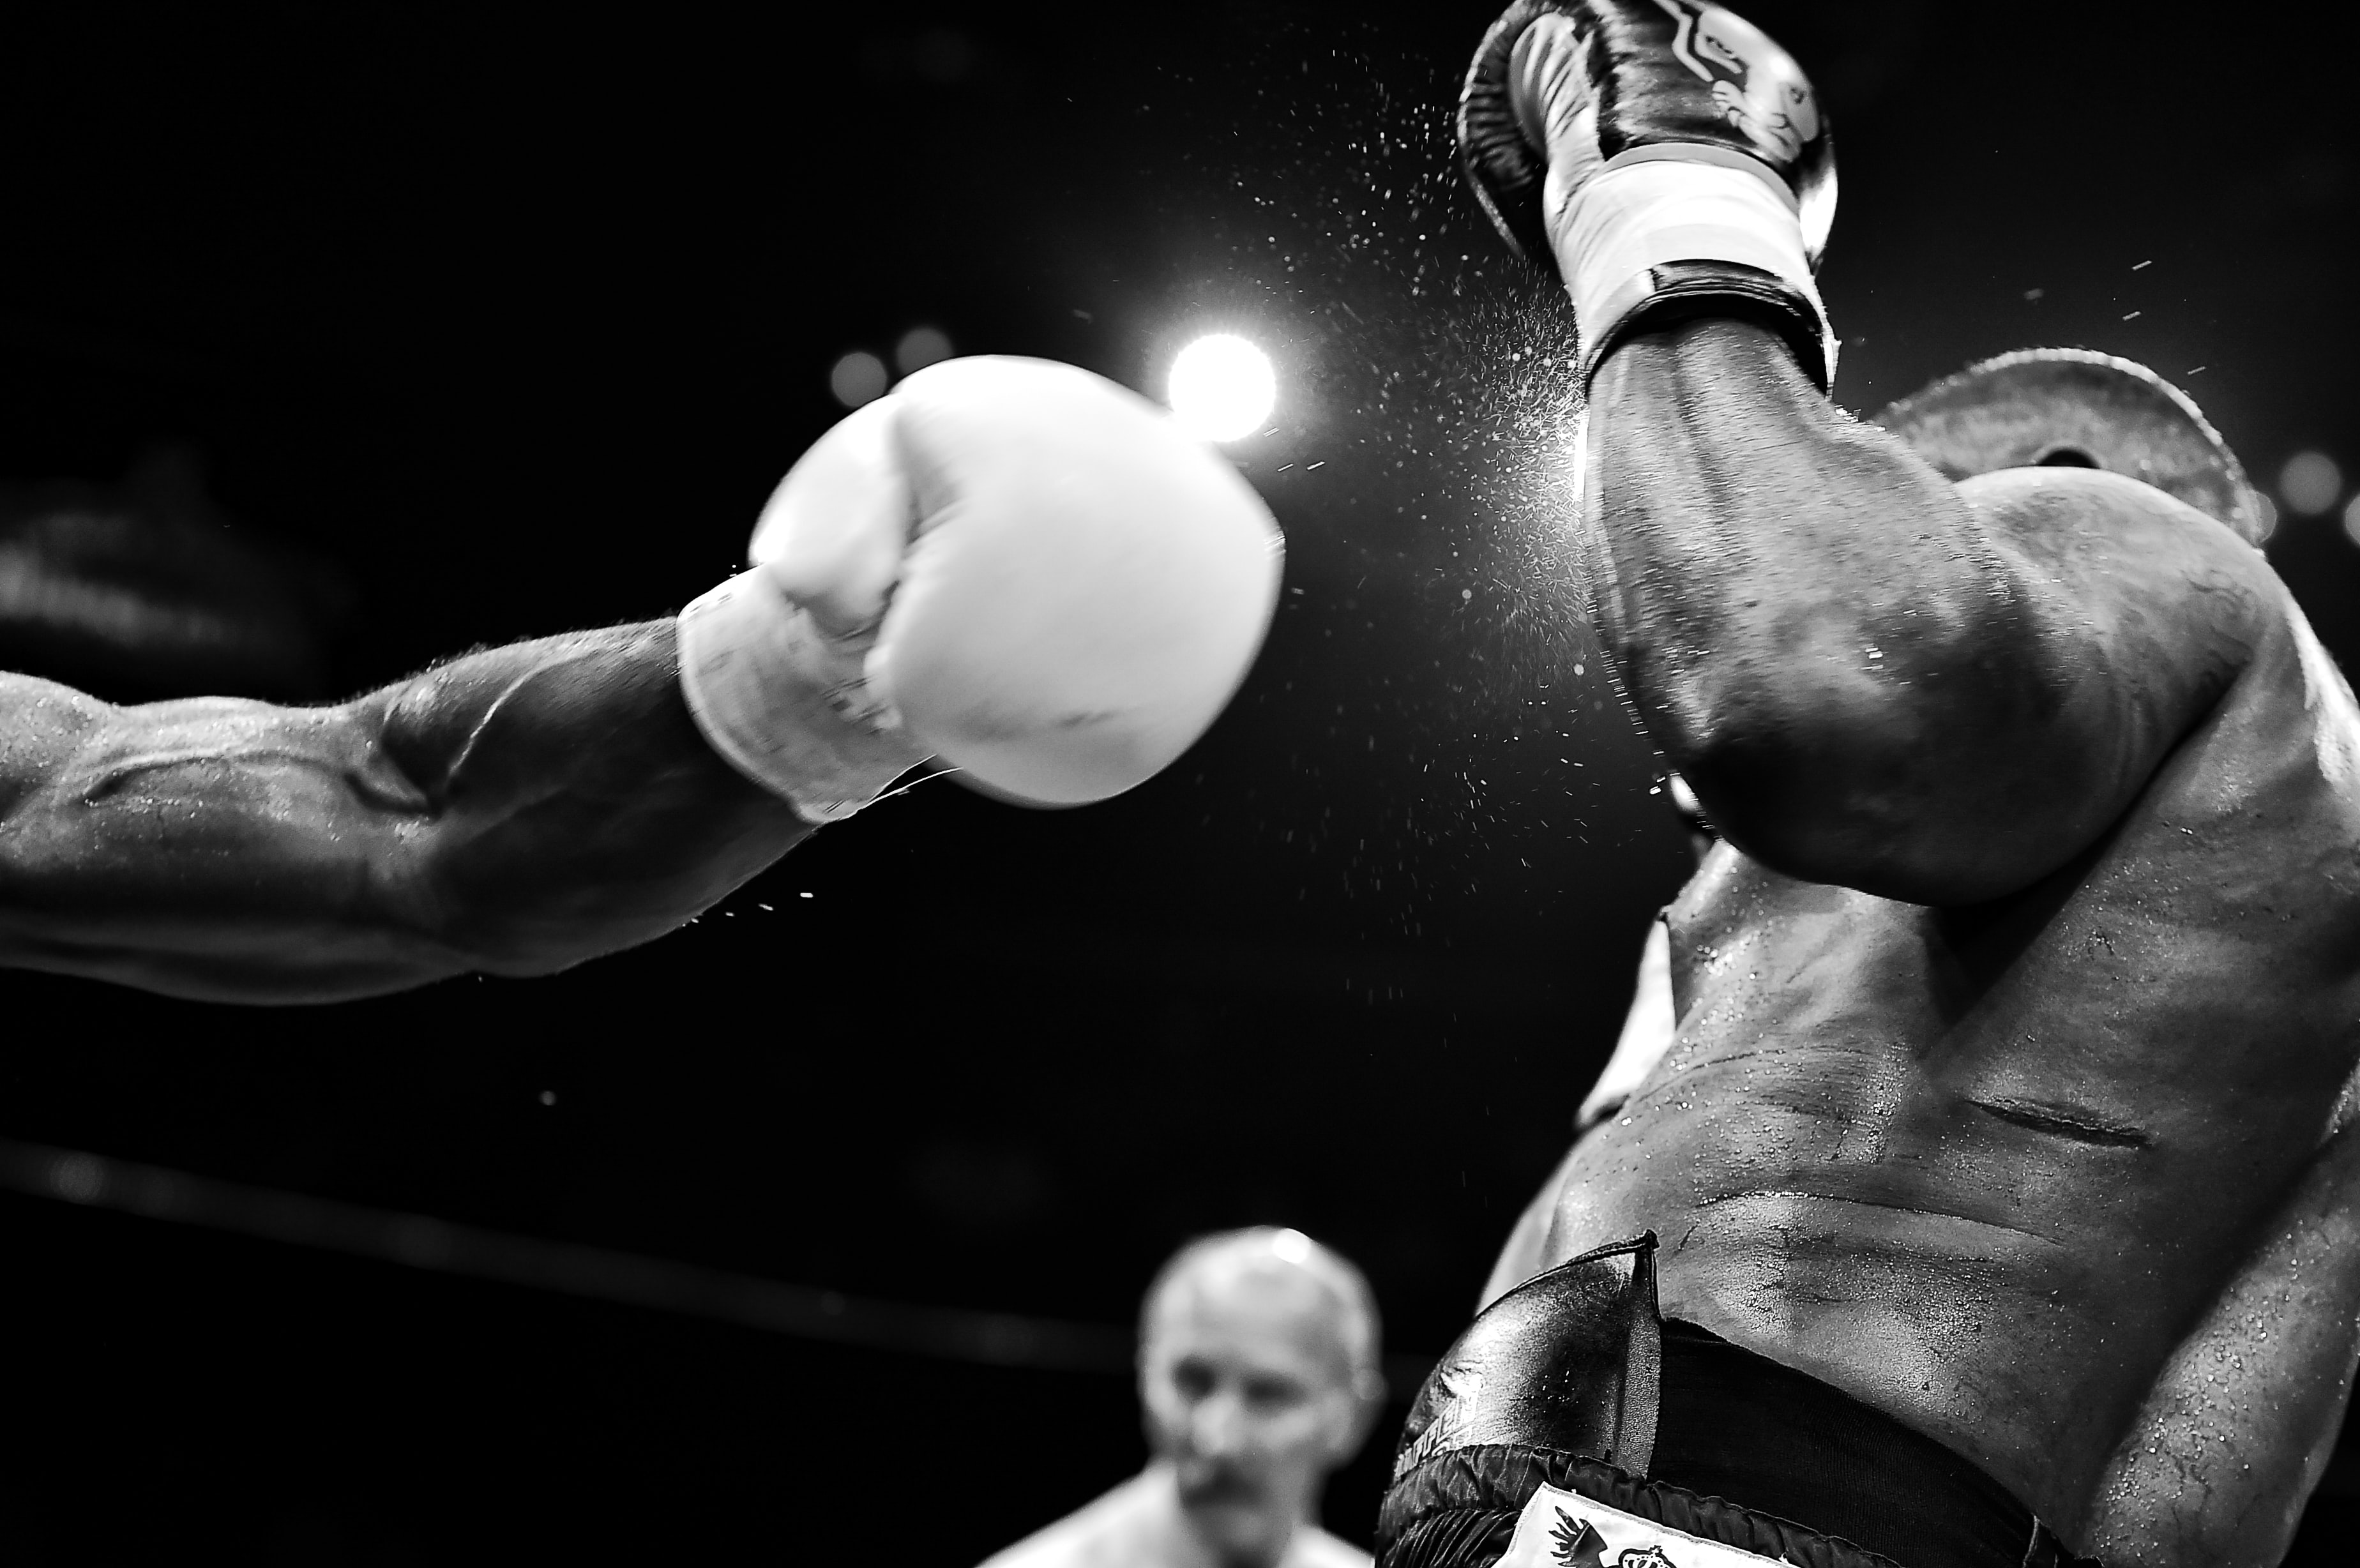 A black and white photo of a man being punched in the face in a boxing match.